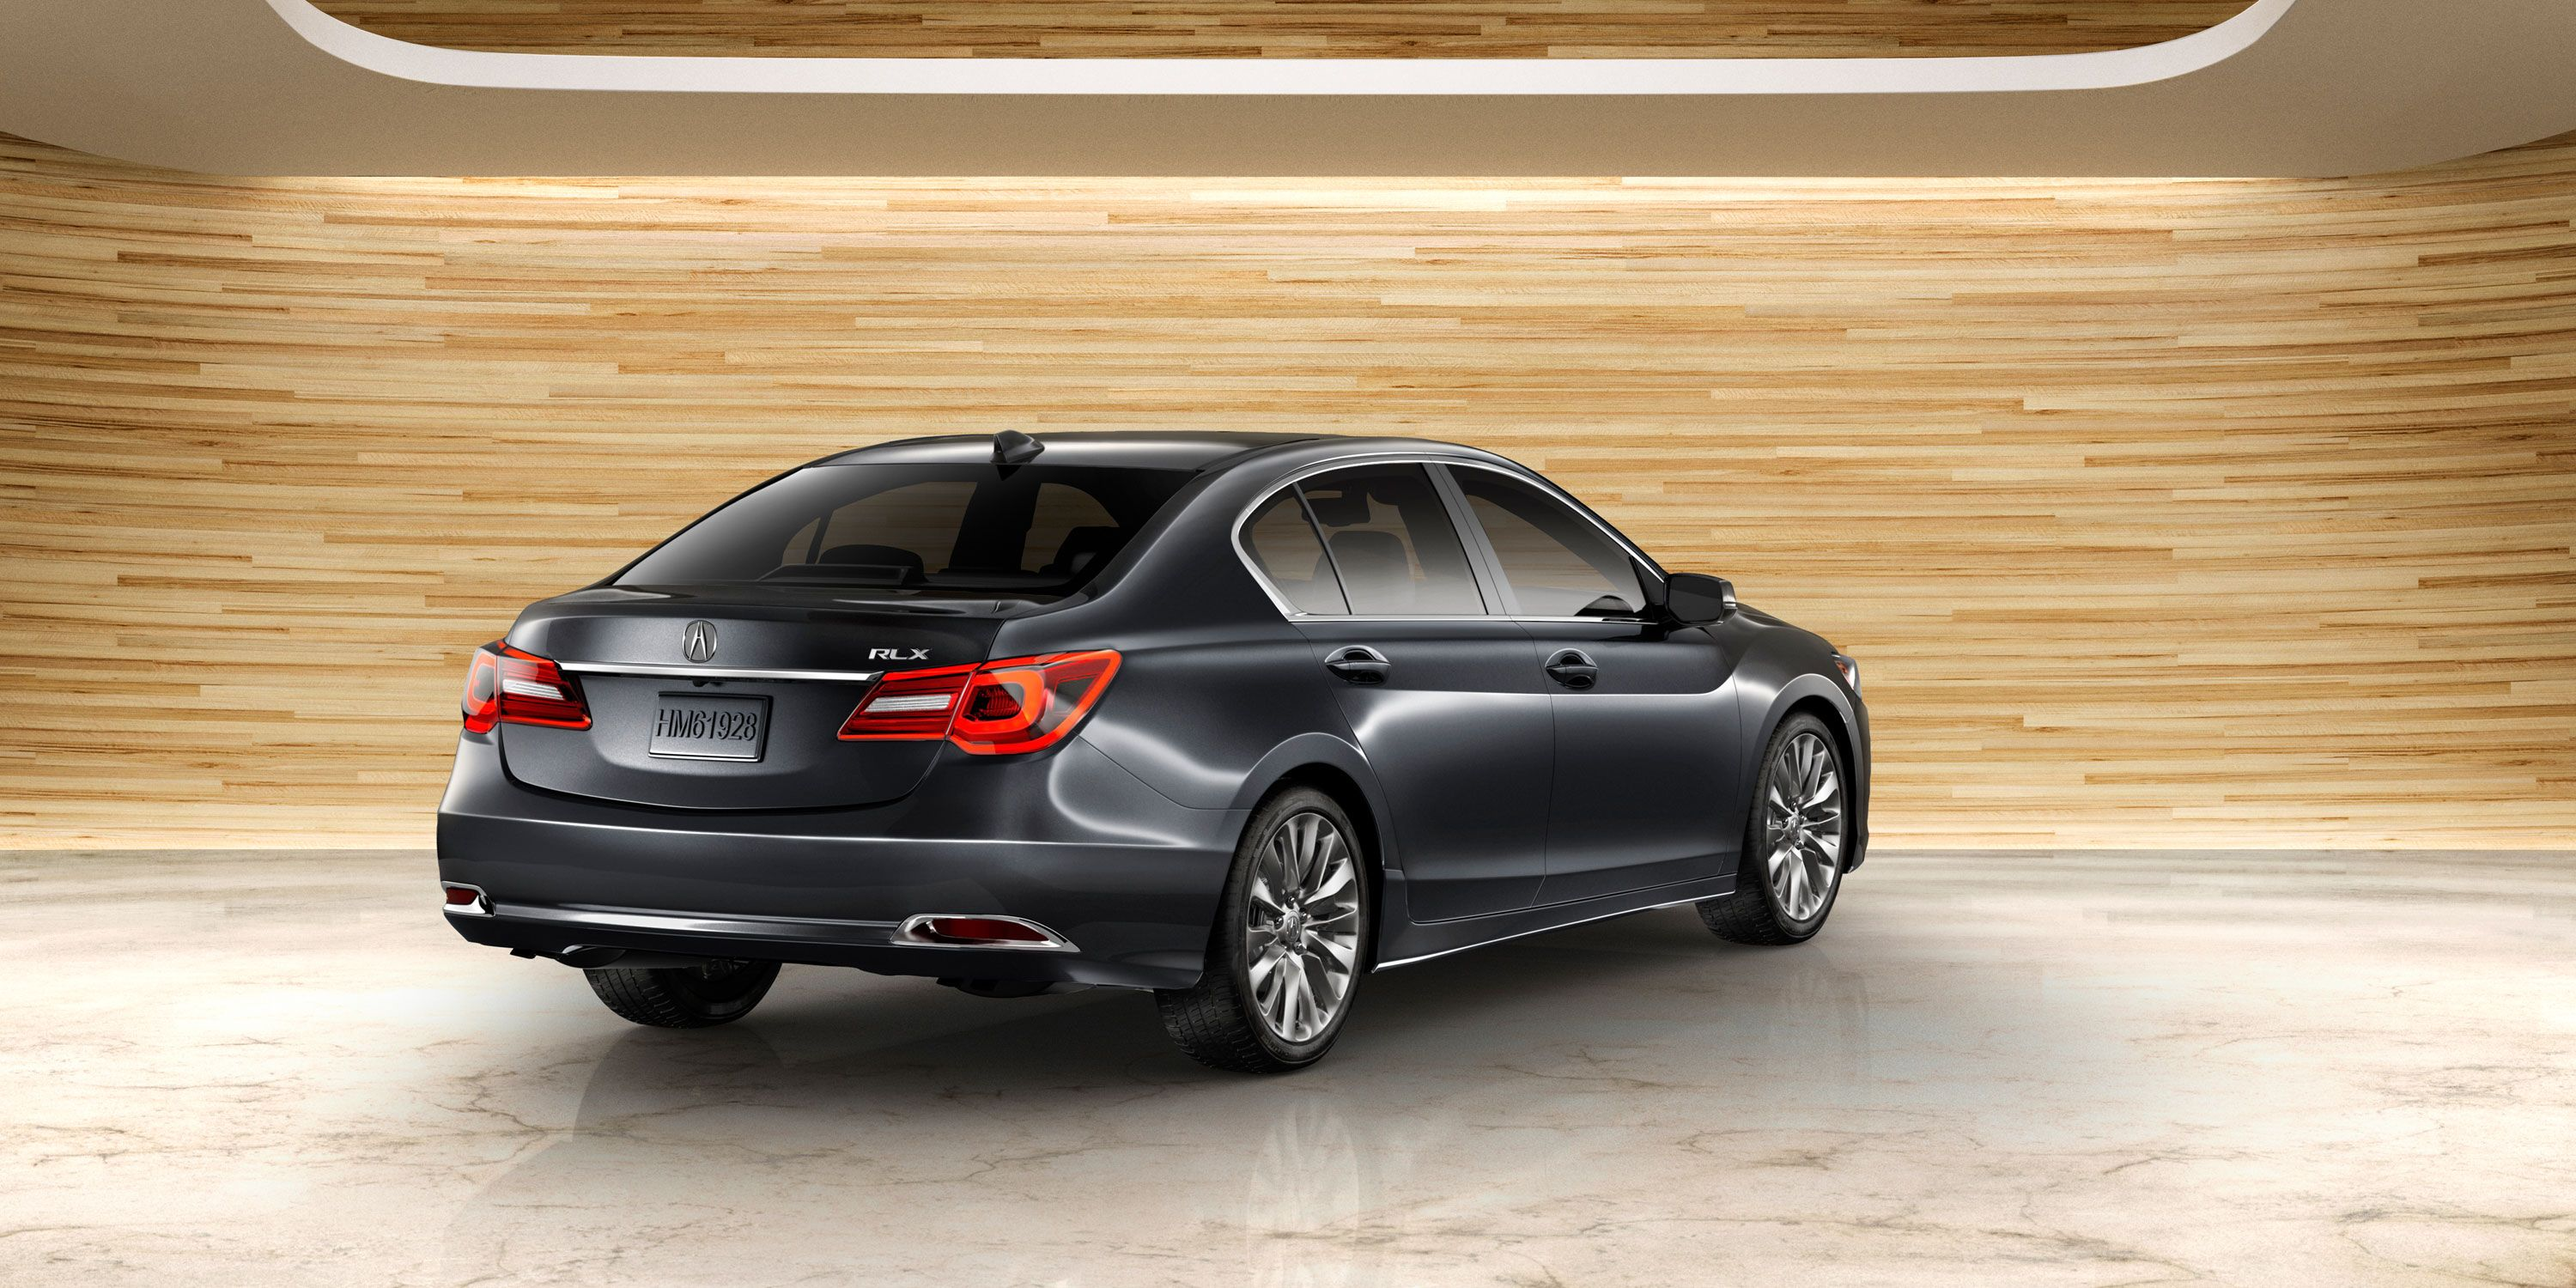 Acura rlx is the featured model the acura rlx 2016 black image is added in car pictures category by the author on aug